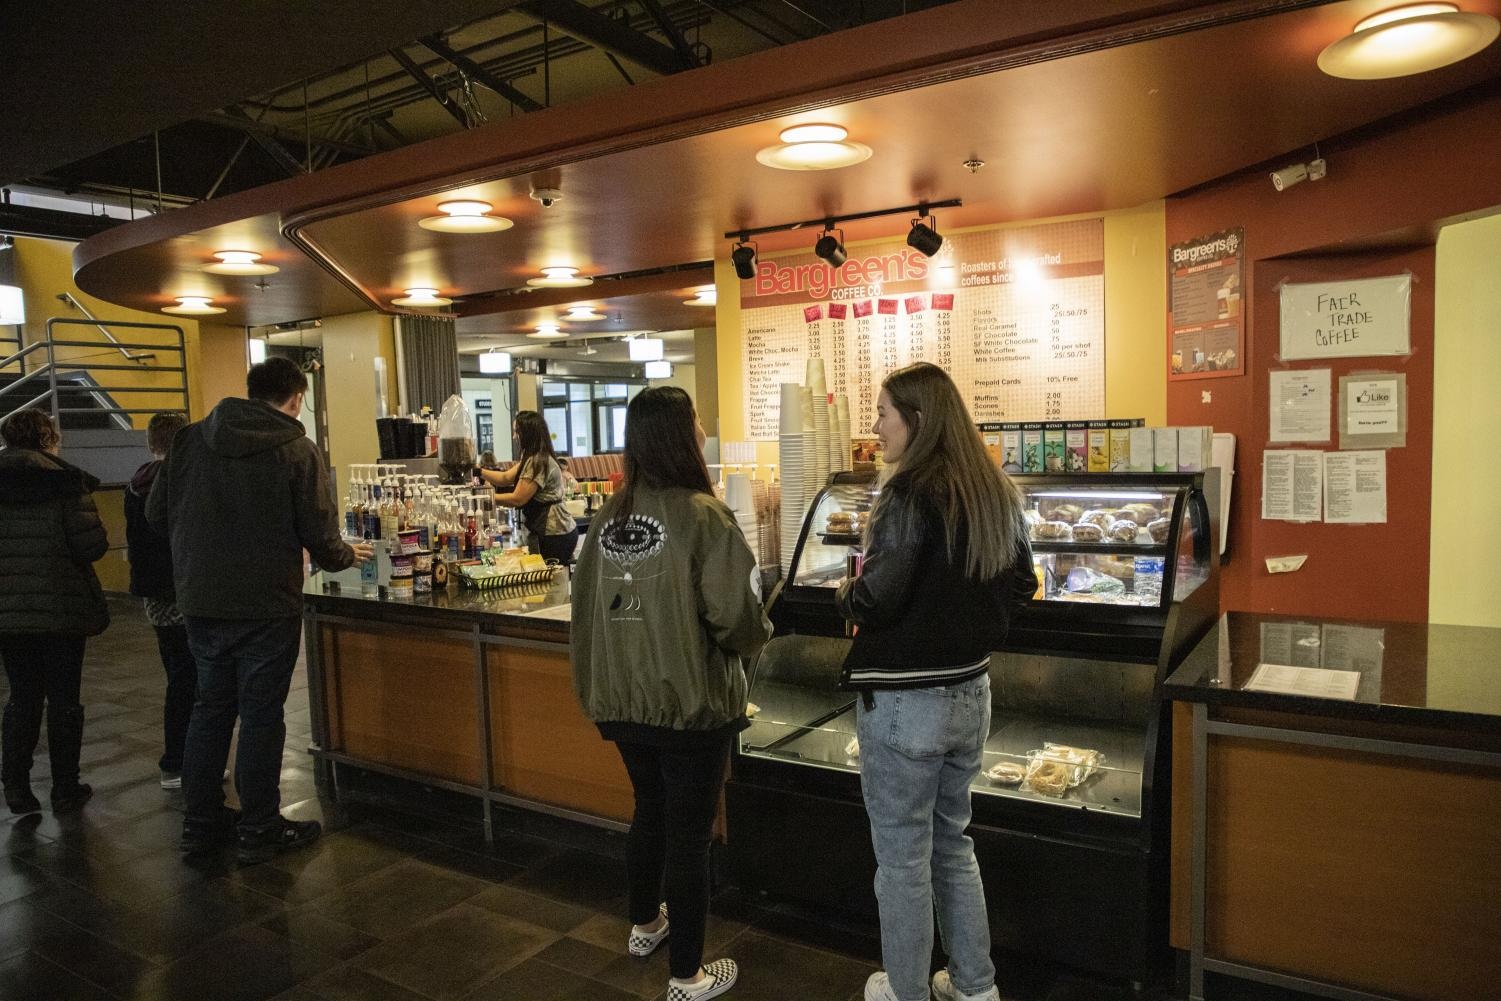 EvCC students wait in line to order from Bargreen's espresso stand located in Parks Student Union.